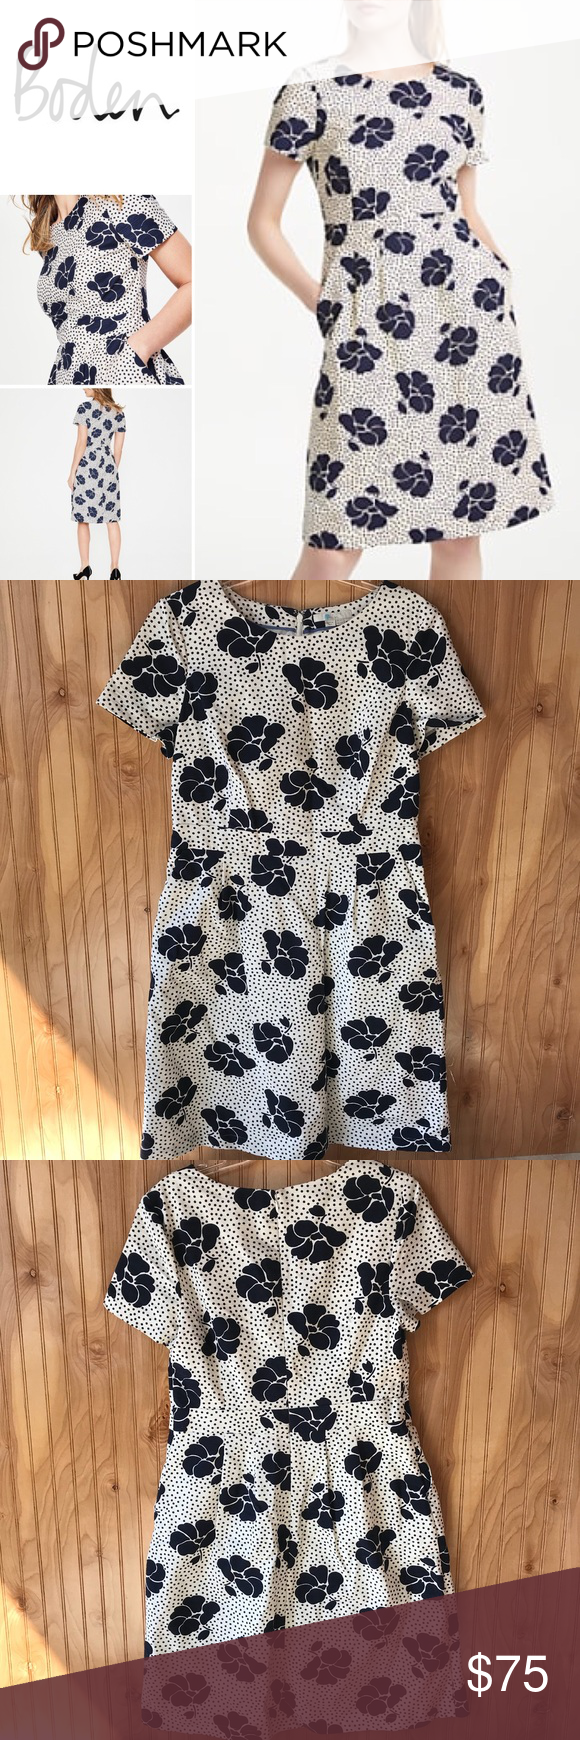 Boden Sierra Textured Dress Navy Blue Off White Yes You Can Nail